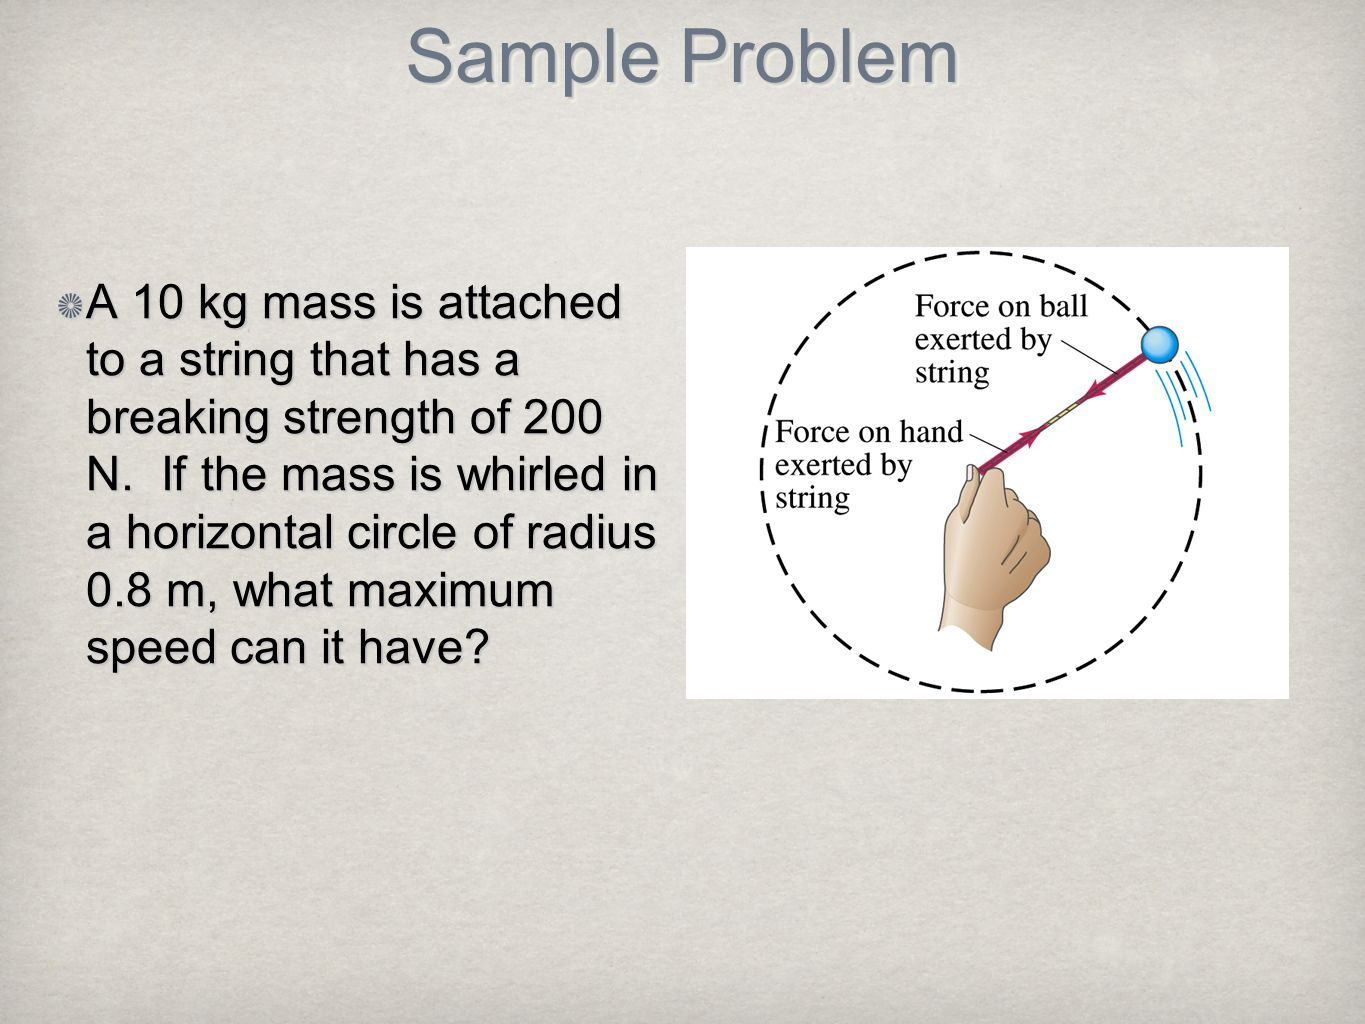 Sample Problem A 10 kg mass is attached to a string that has a breaking strength of 200 N. If the mass is whirled in a horizontal circle of radius 0.8